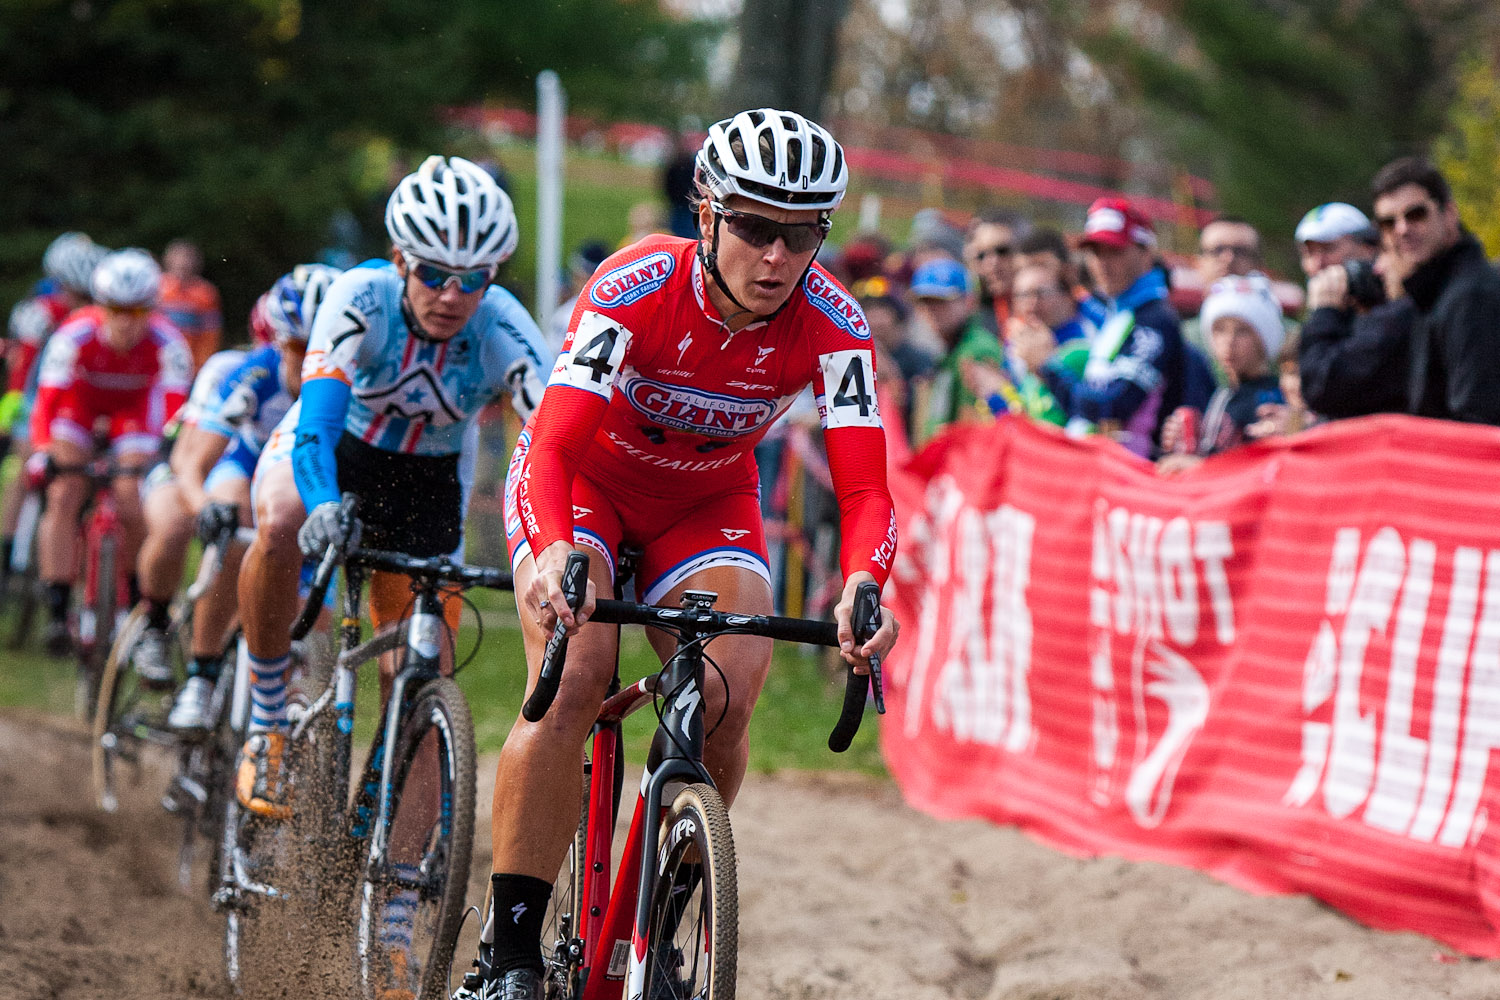 Meredith Miller leads the group through the sand pit. © Kent Baumgardt